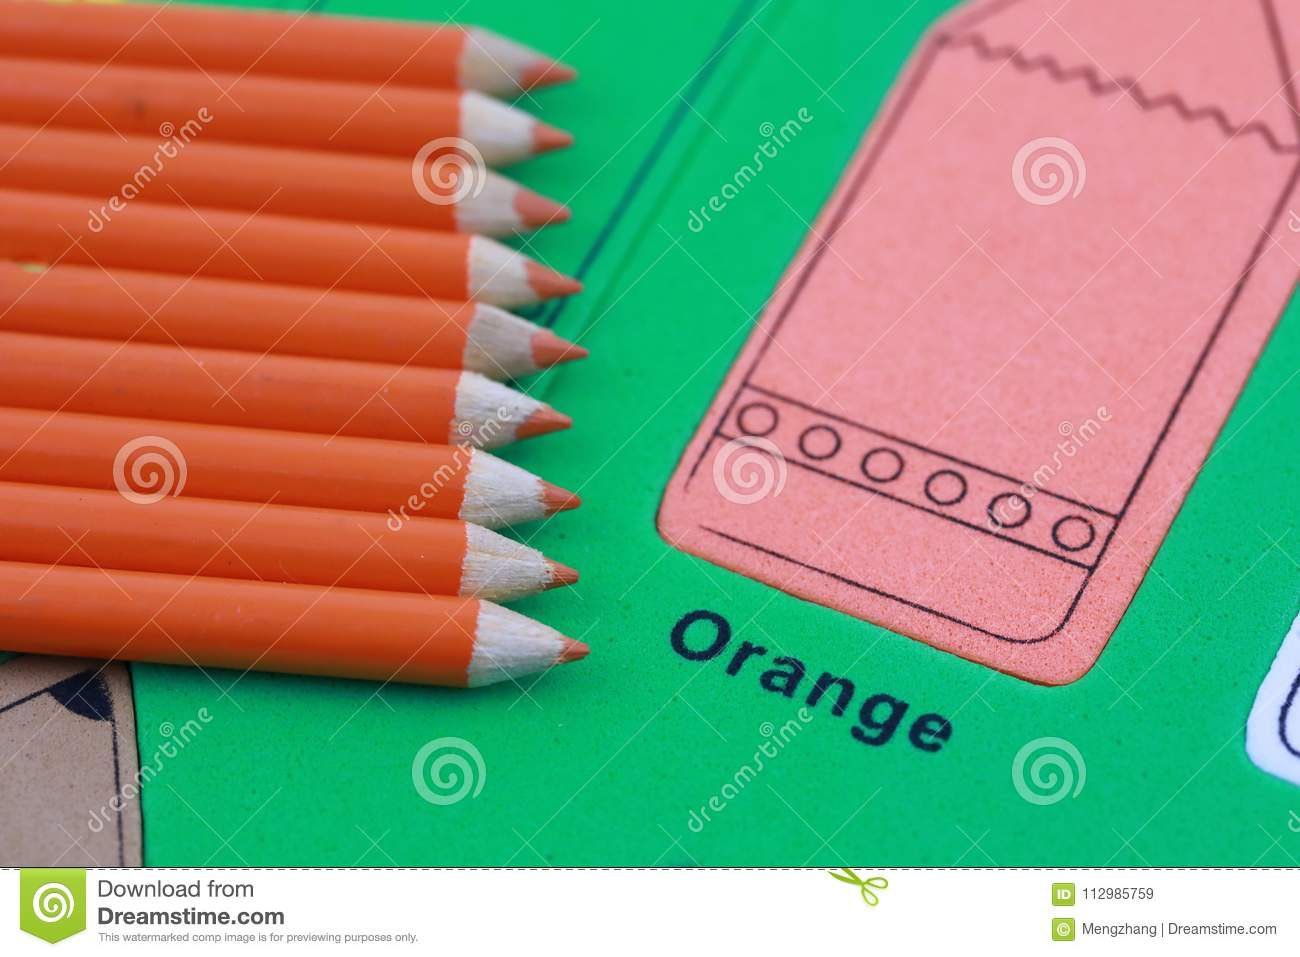 orange pencil crayon